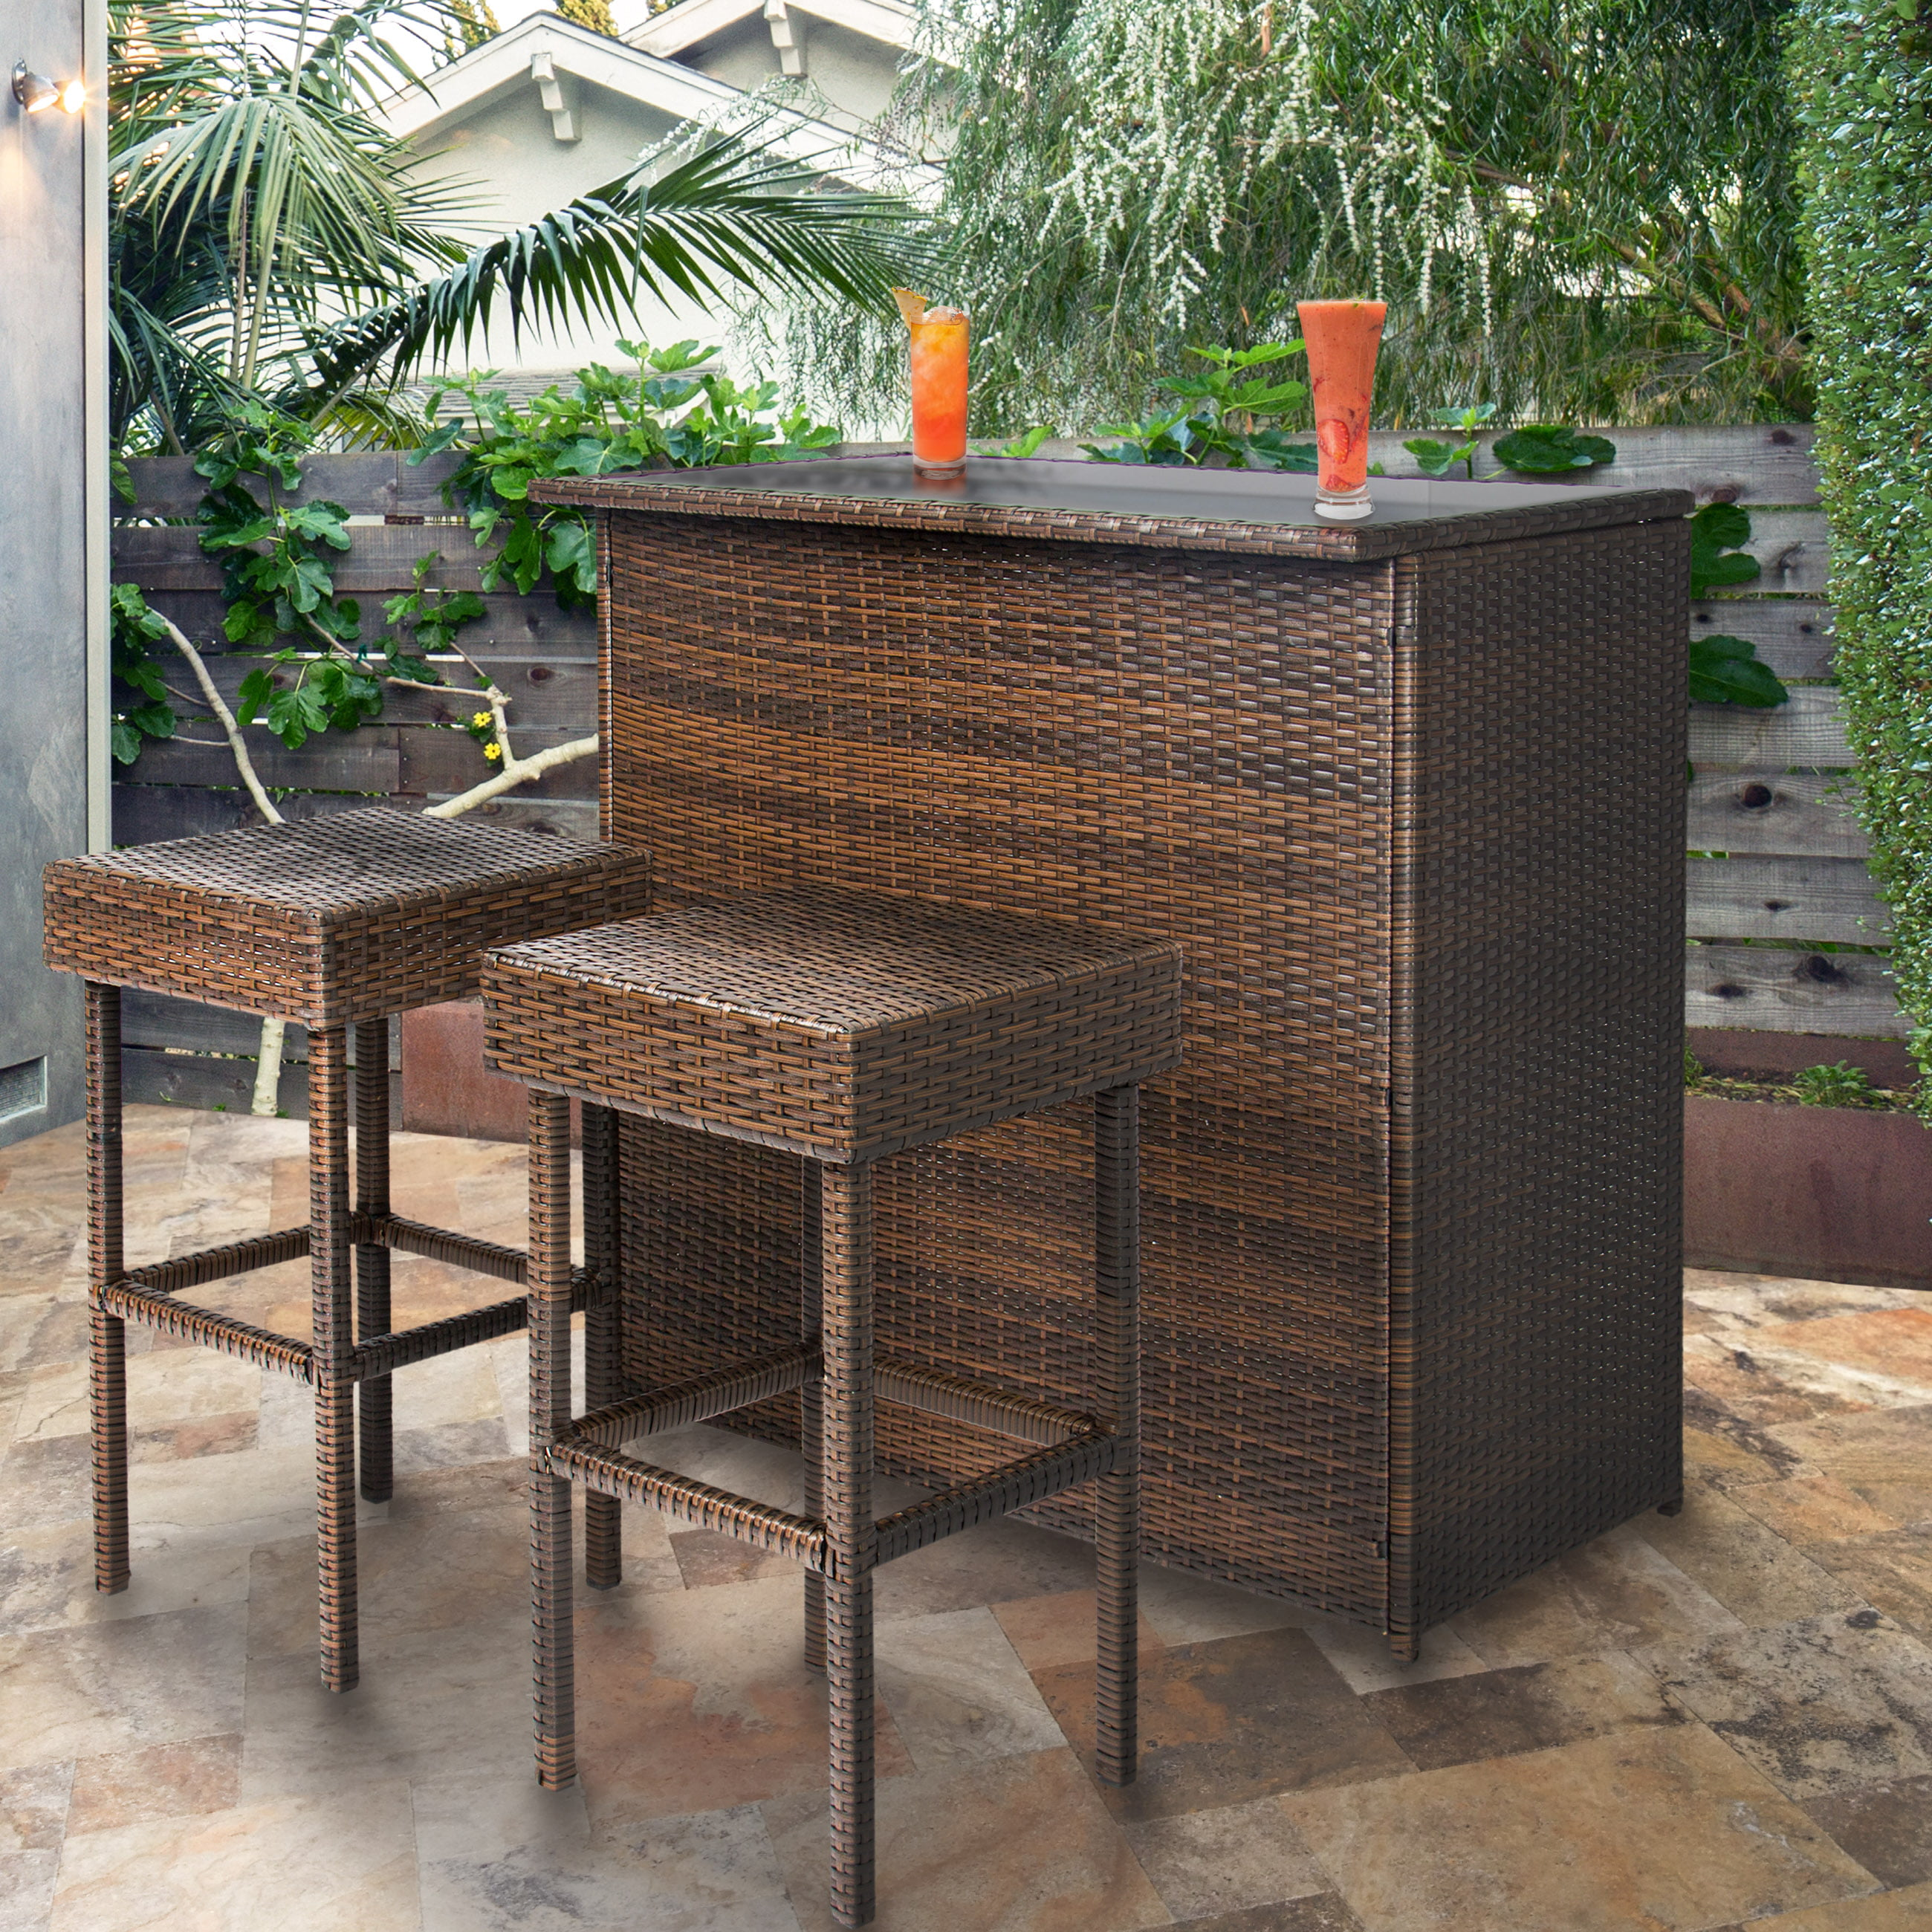 3pc wicker bar set patio outdoor backyard table u0026 2 stools rattan garden furniture walmartcom